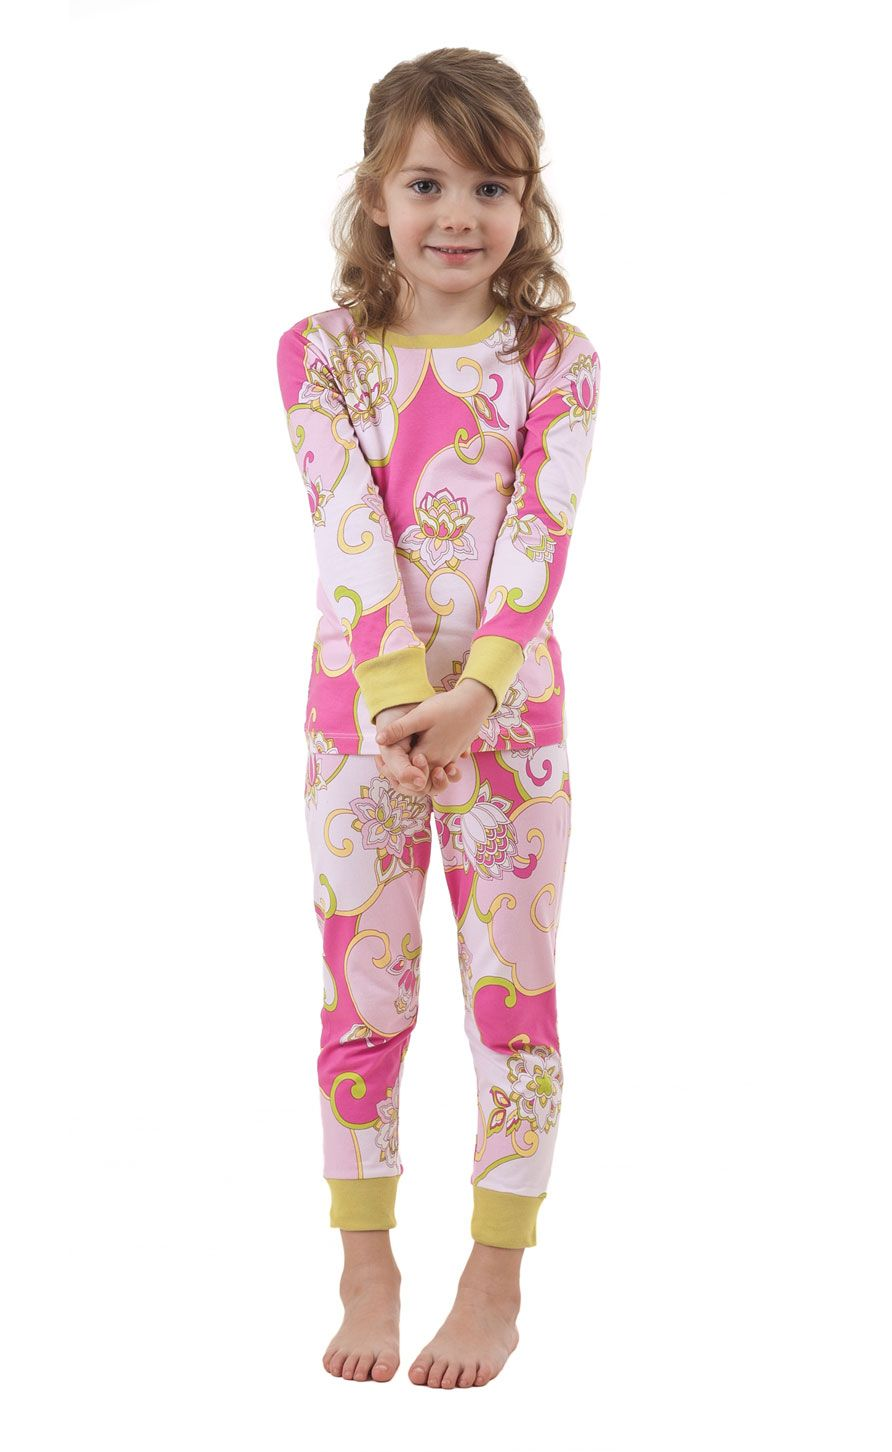 Pajama Sets Separates. Stay cozy during bedtime and beyond with pajama sets separates. Versatile and comfy, this apparel fits your sleepwear preferences with ease.